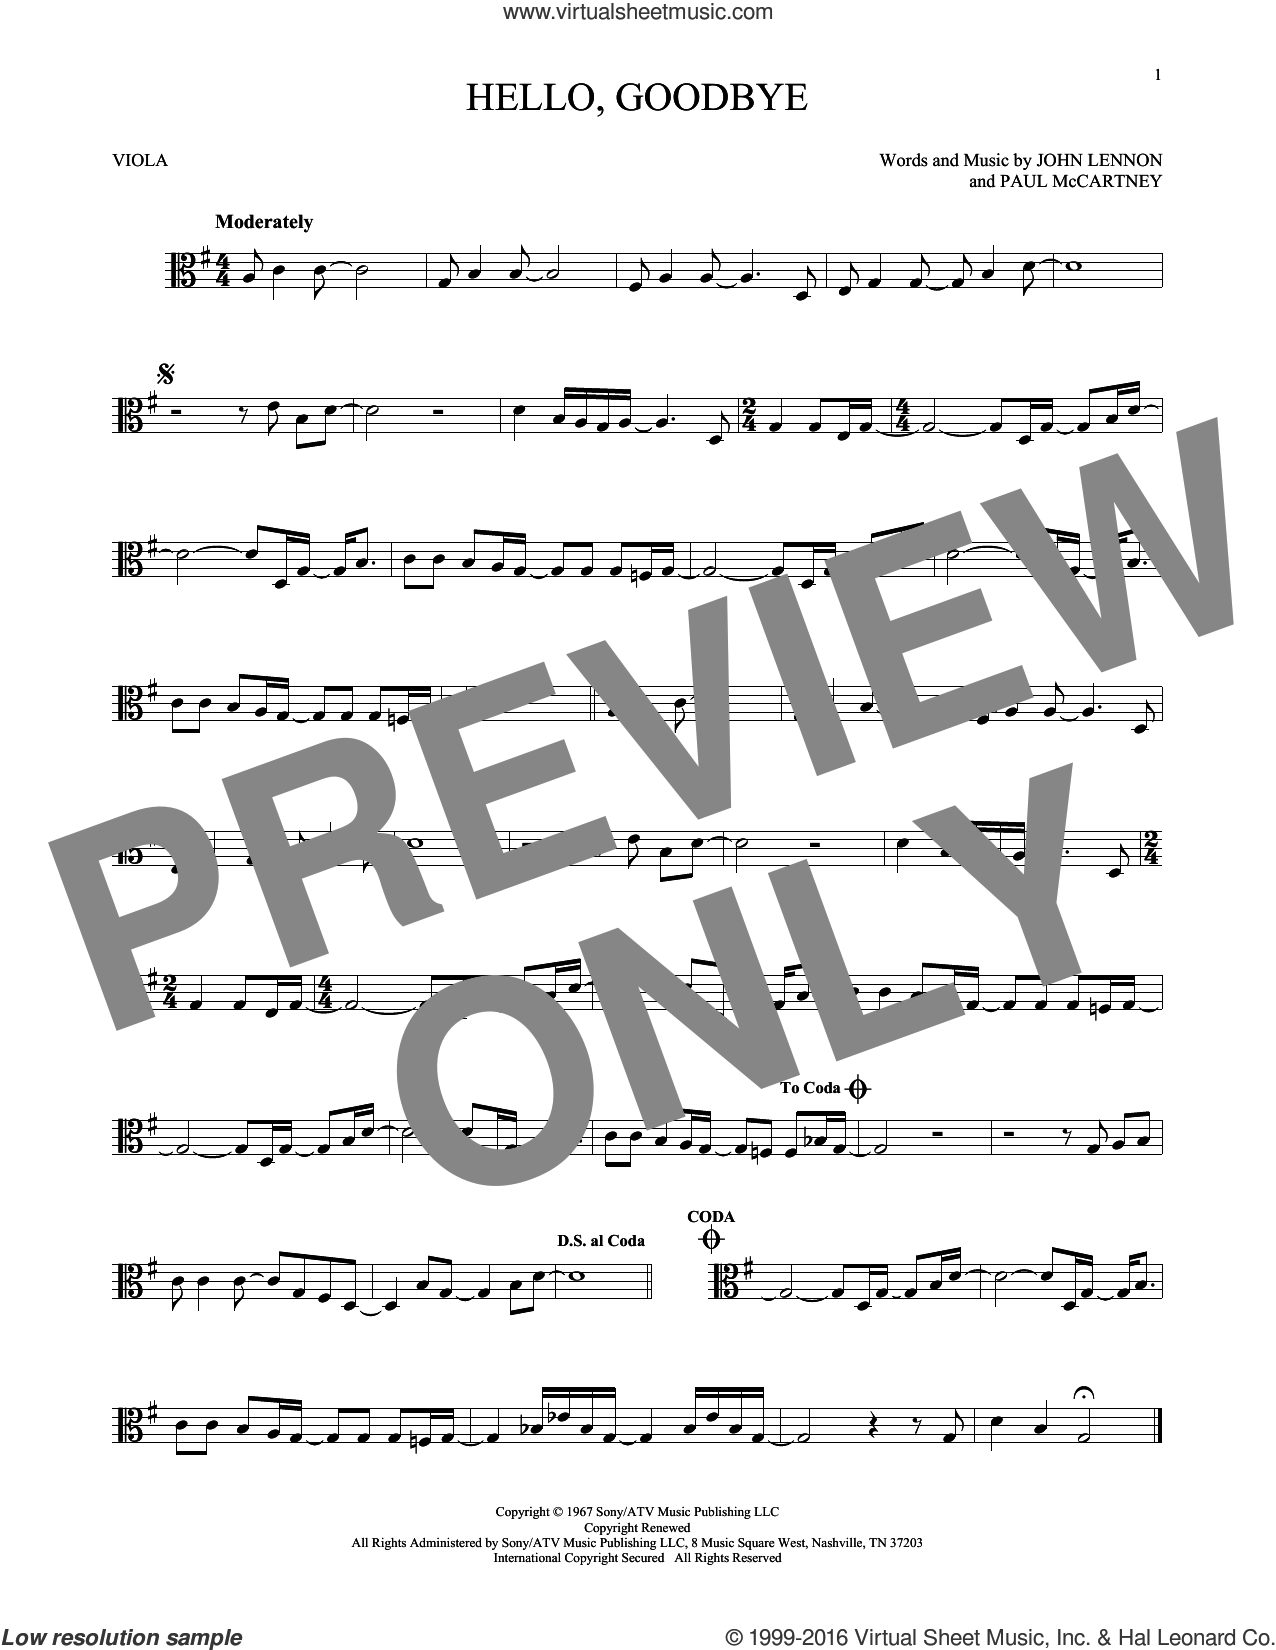 Hello, Goodbye sheet music for viola solo by The Beatles, John Lennon and Paul McCartney, intermediate skill level